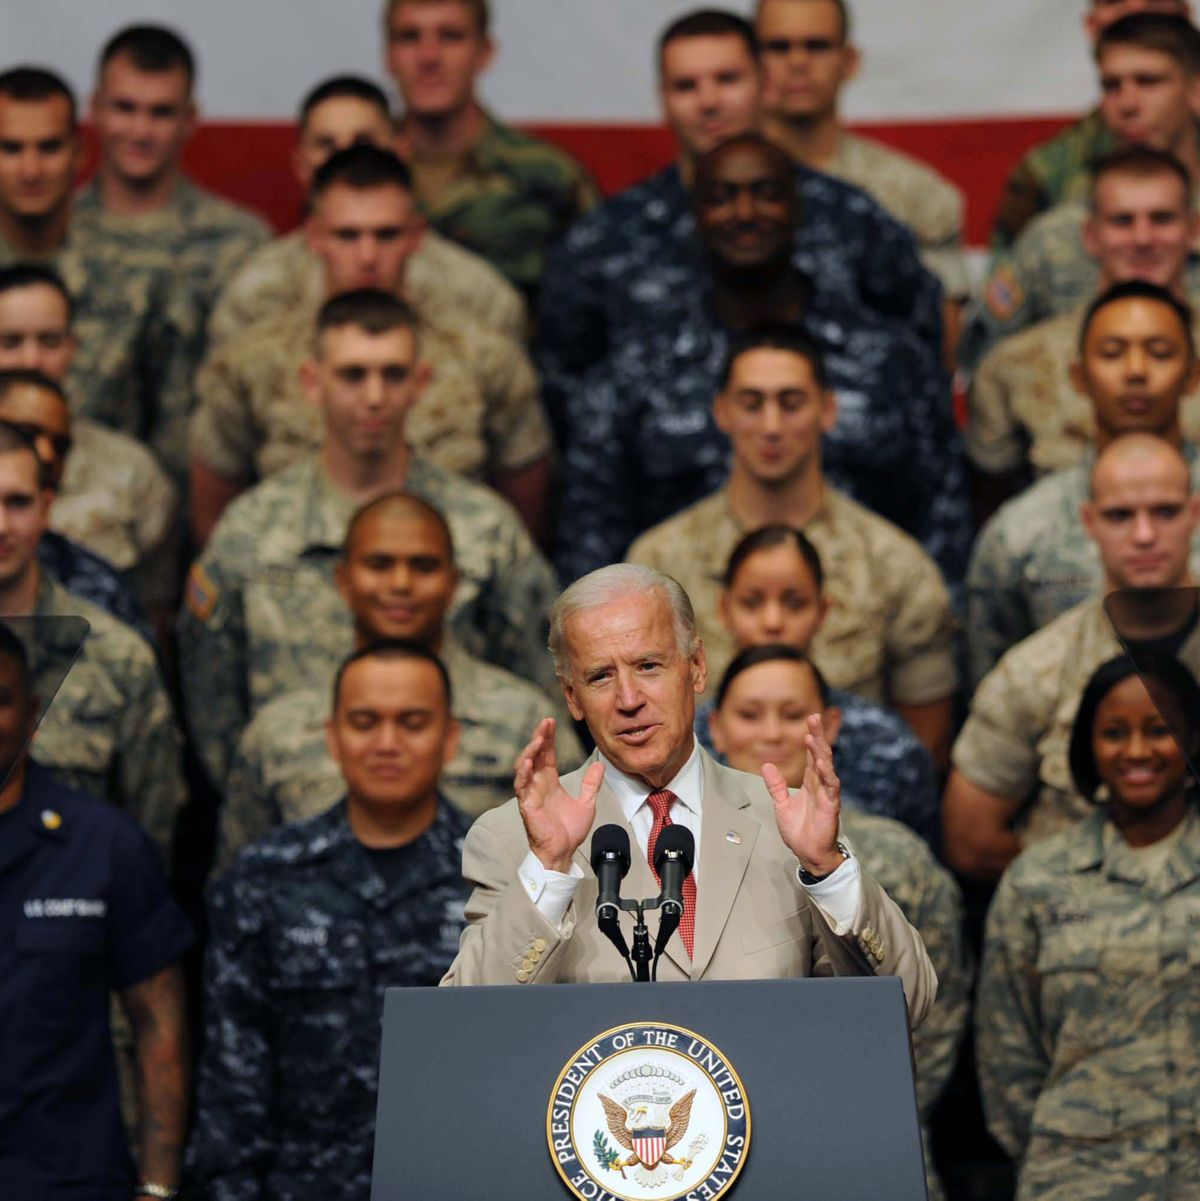 Could Biden Move Left on National Security?